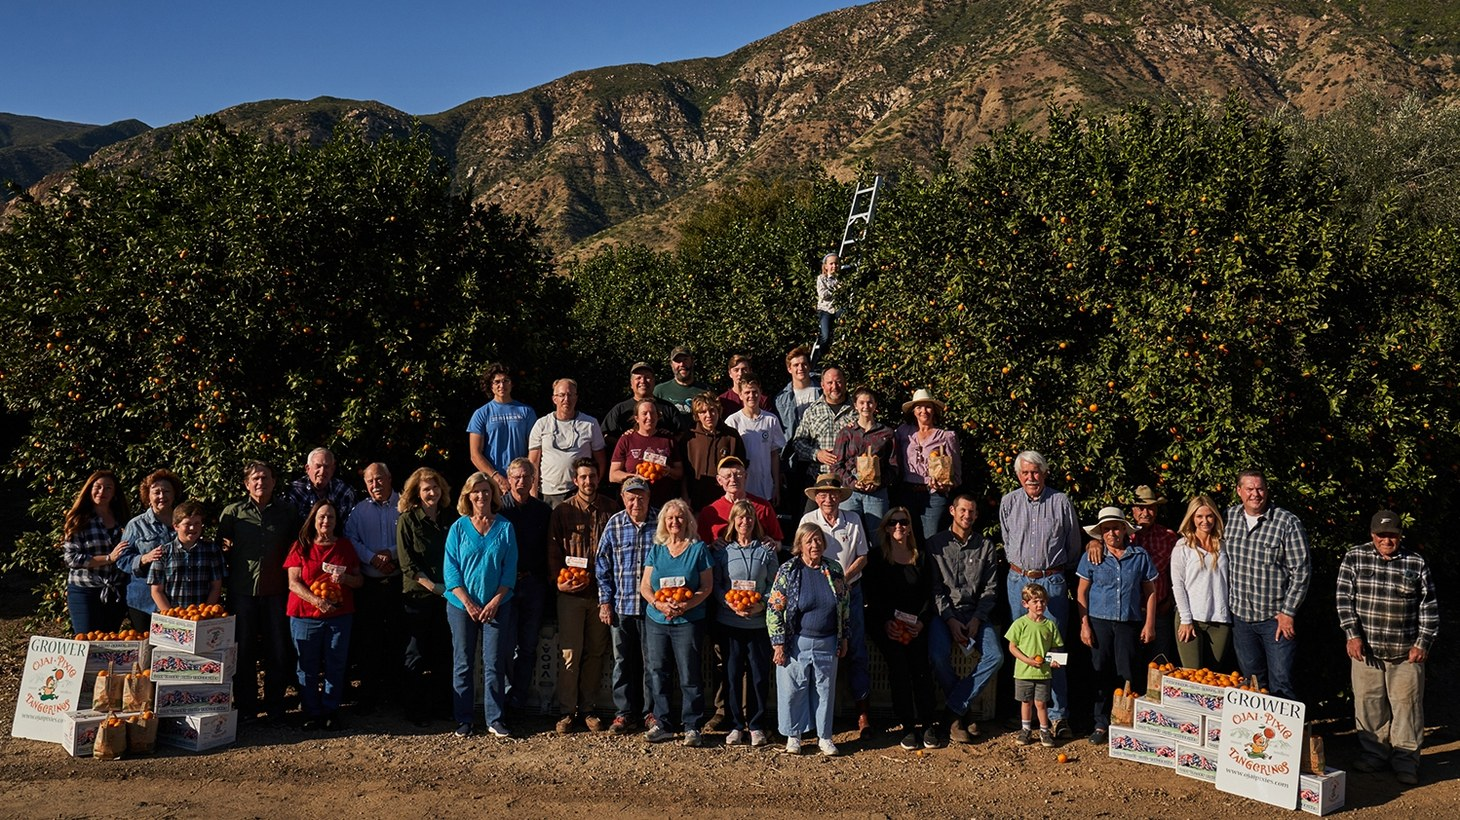 Ojai pixie growers in early March 2020 at Friend's Ranch before the shutdown.